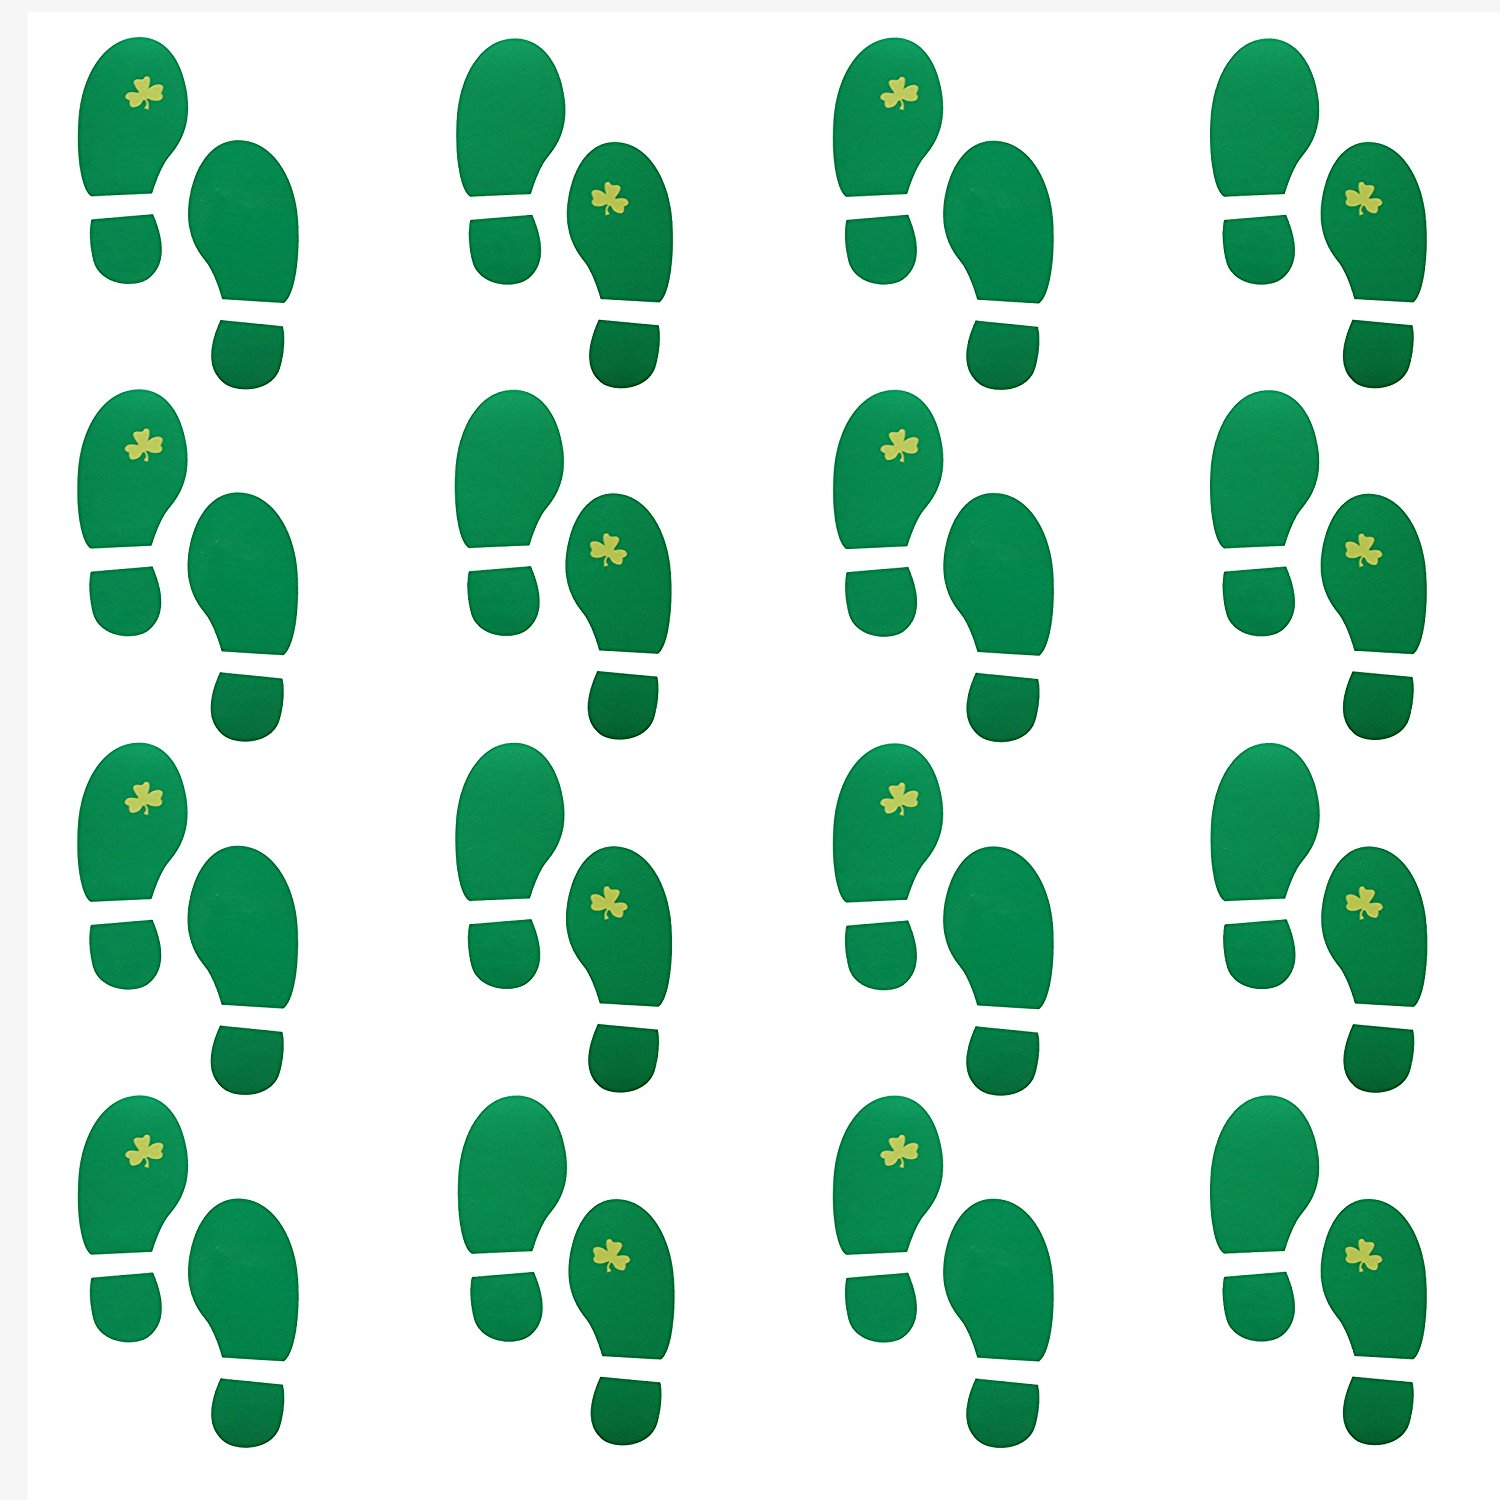 Leprechaun Foot Print Floor Decal Clings (16 Pairs) Floor Stickers for St. Patrick's Day Party Decor/ Green Footprint Stickers for Floors and Walls